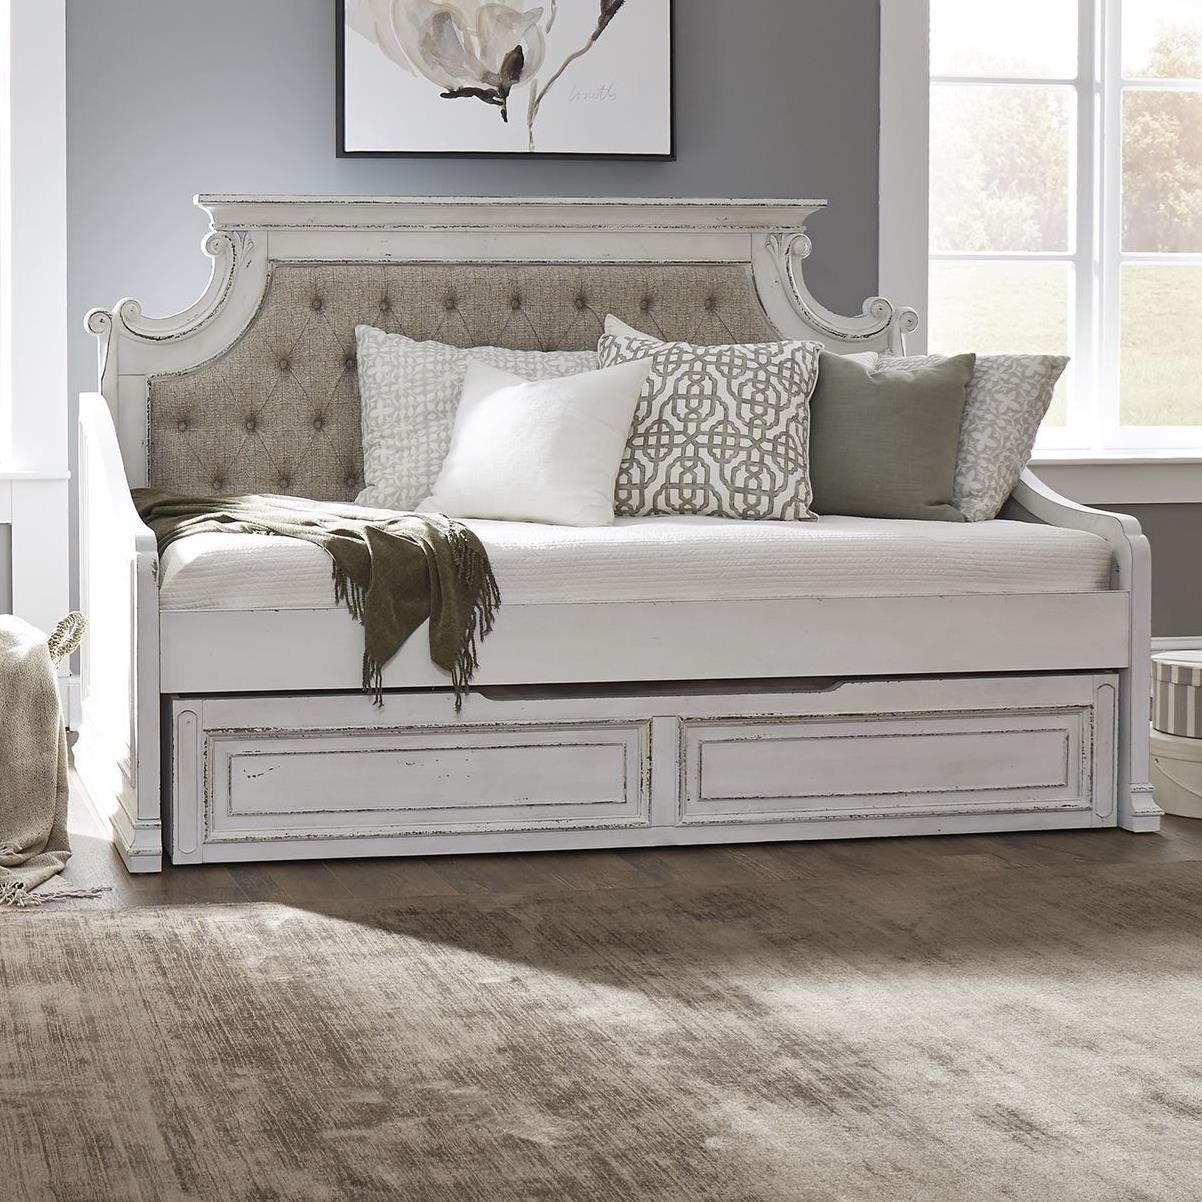 Magnolia Manor Twin Upholstered Trundle Daybed by Liberty Furniture at SuperStore